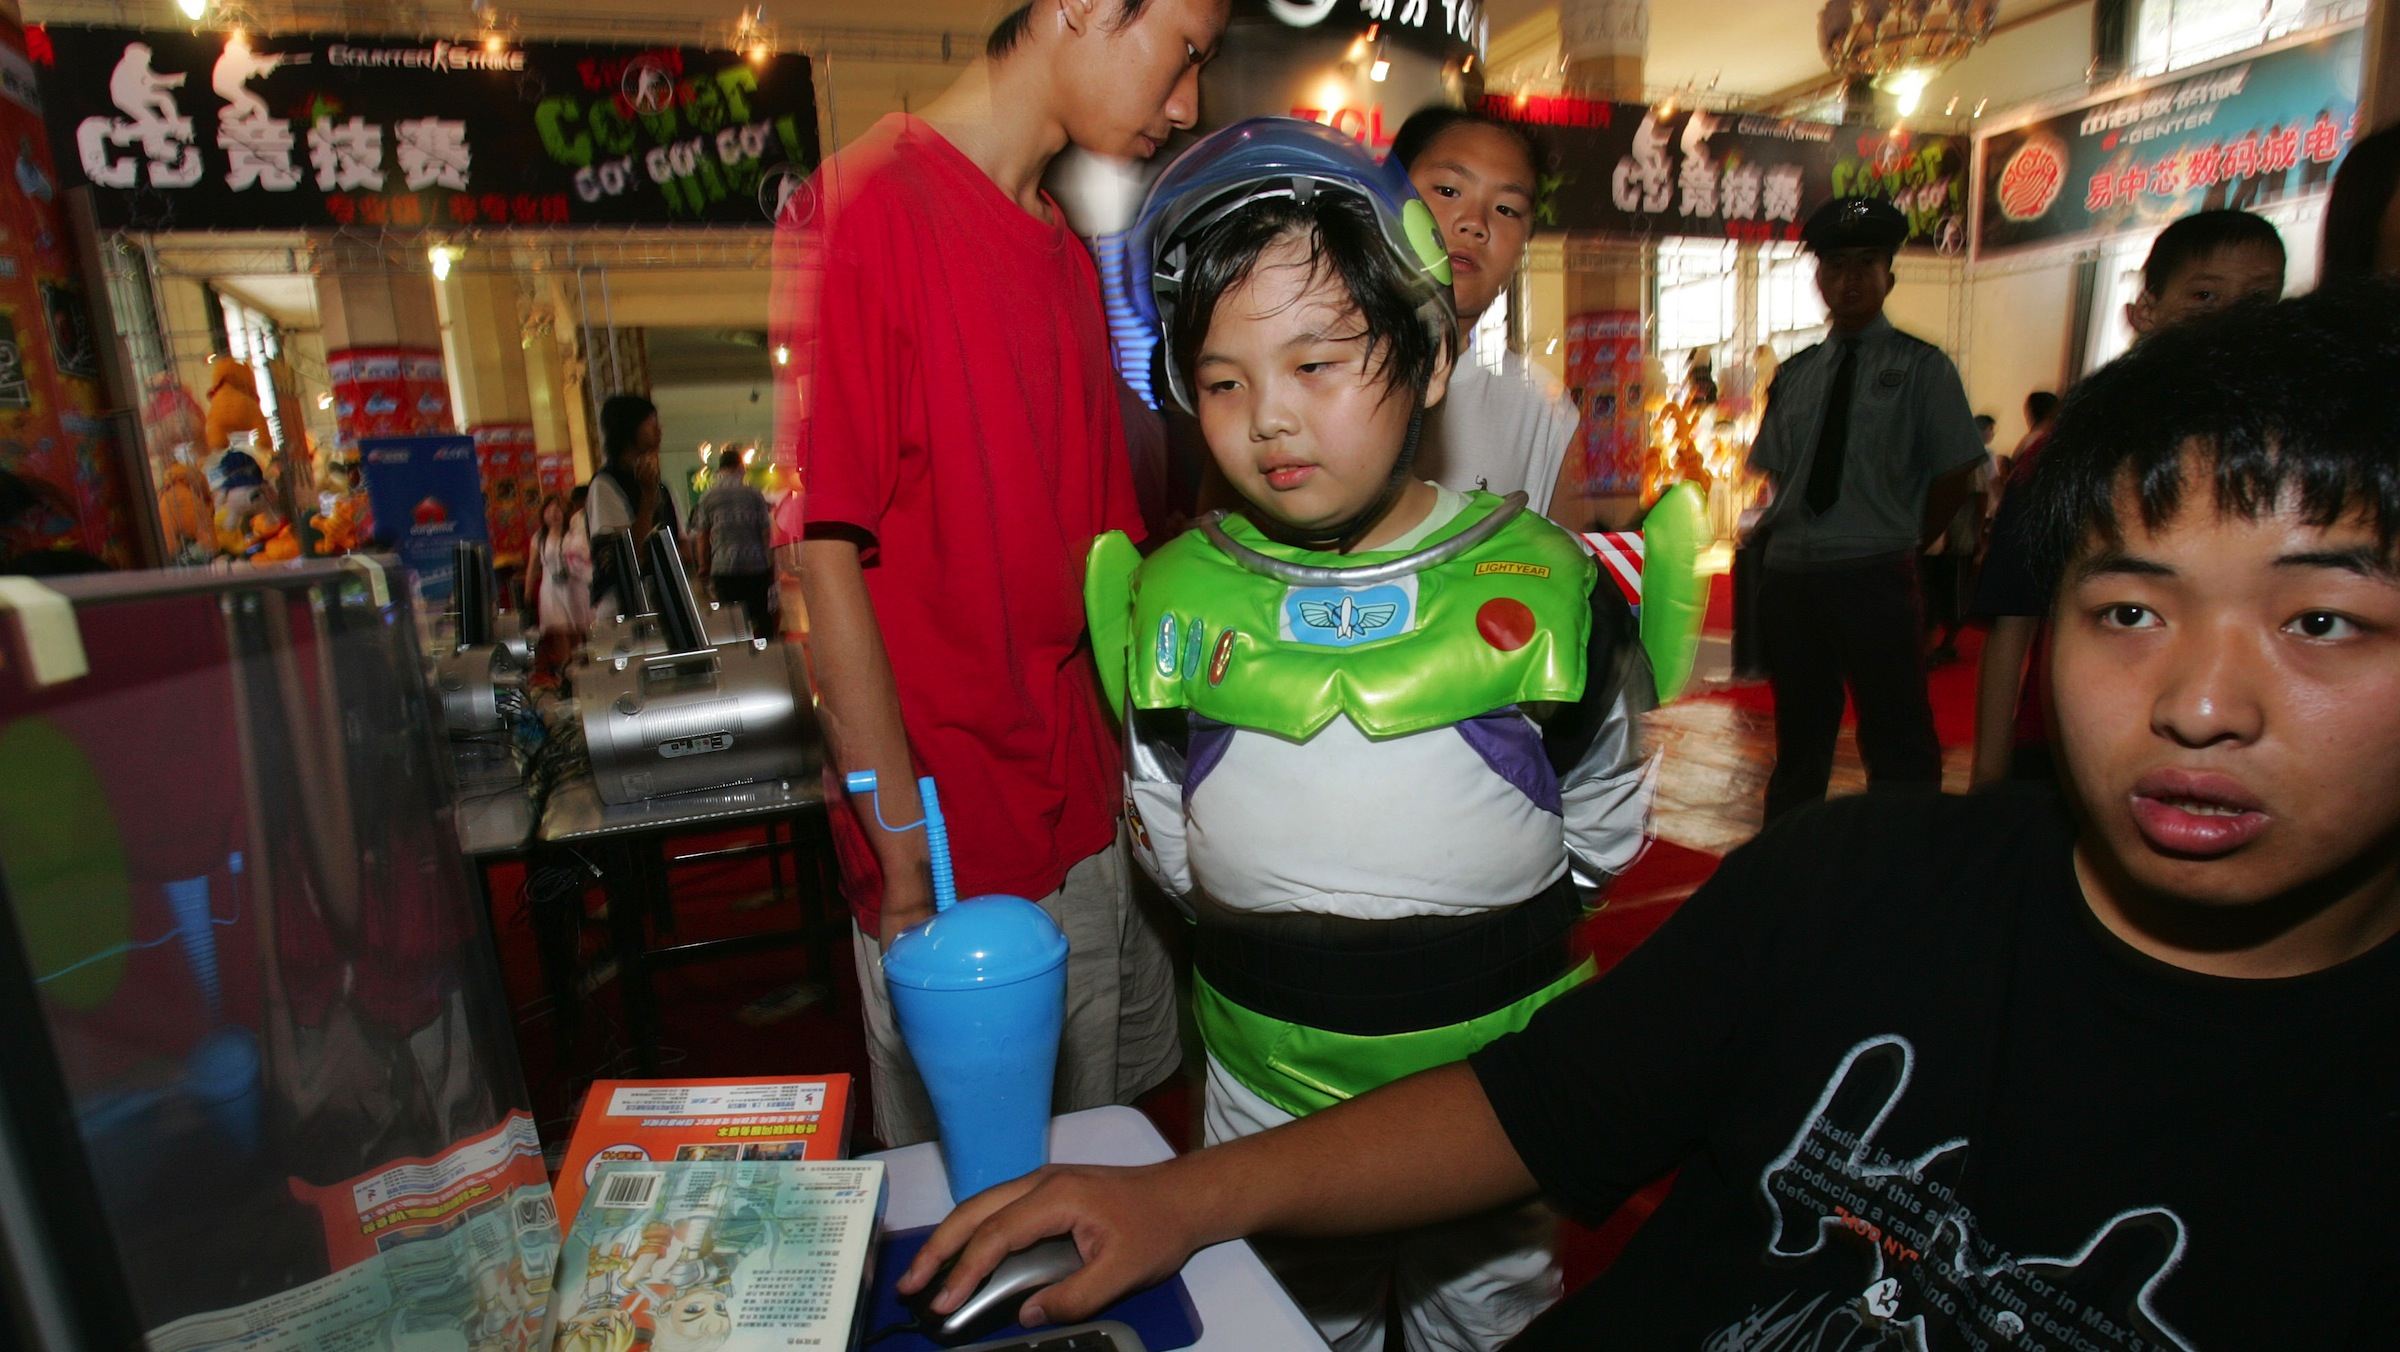 """A Chinese boy dressed like the American cartoon character Buzz Lightyear watches a fellow video game player try his luck at the the game """"Counter Strike"""" as a Chinese security guard stands guard nearby at the Splendid dress carnival cartoon festival being held at the Beijing Military Museum in the Chinese capital Thursday Aug. 4, 2005. China will bar new foreign television channels and step up censorship of imported programming, the Culture Ministry announced, adding to a sweeping effort to tighten the communist government's controls over popular culture. The government also will ban new licenses for companies to import newspapers and magazines, electronic publications, audiovisual products and children's cartoons.(AP Photo/Elizabeth Dalziel)"""